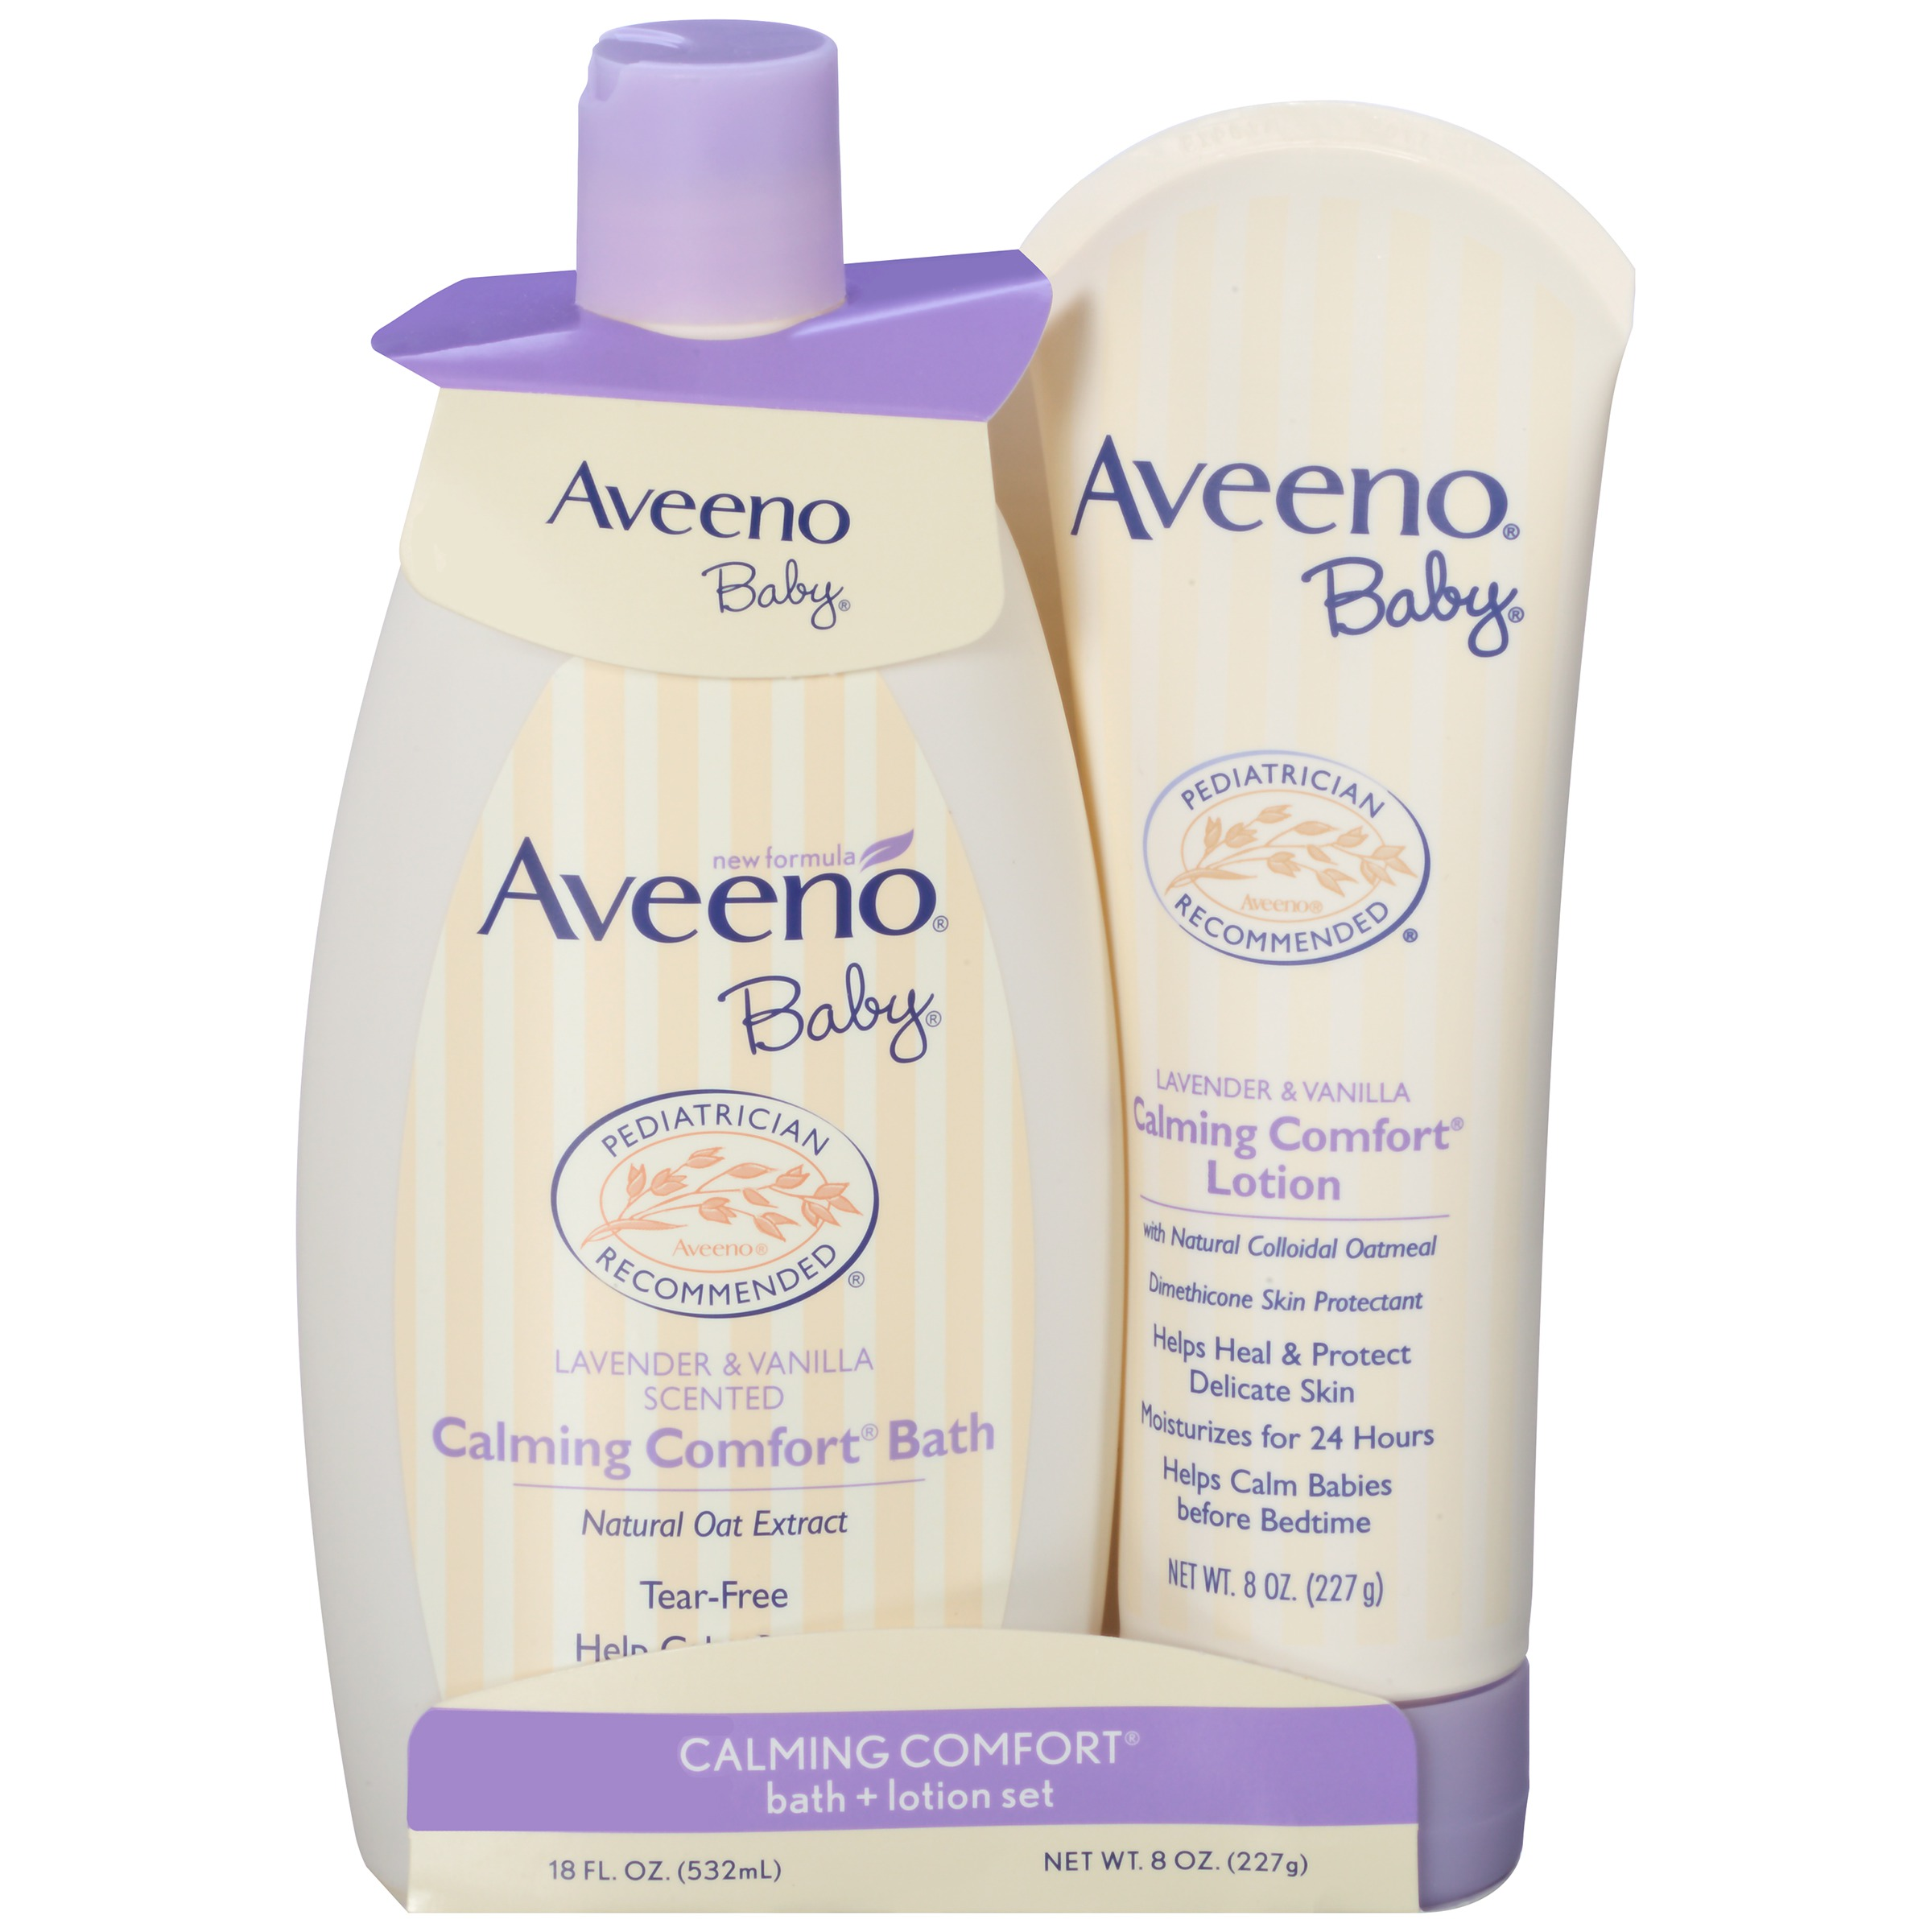 Aveeno Baby Calming Comfort Bath + Lotion Set, Baby Skin Care Products, 2 Items by Aveno